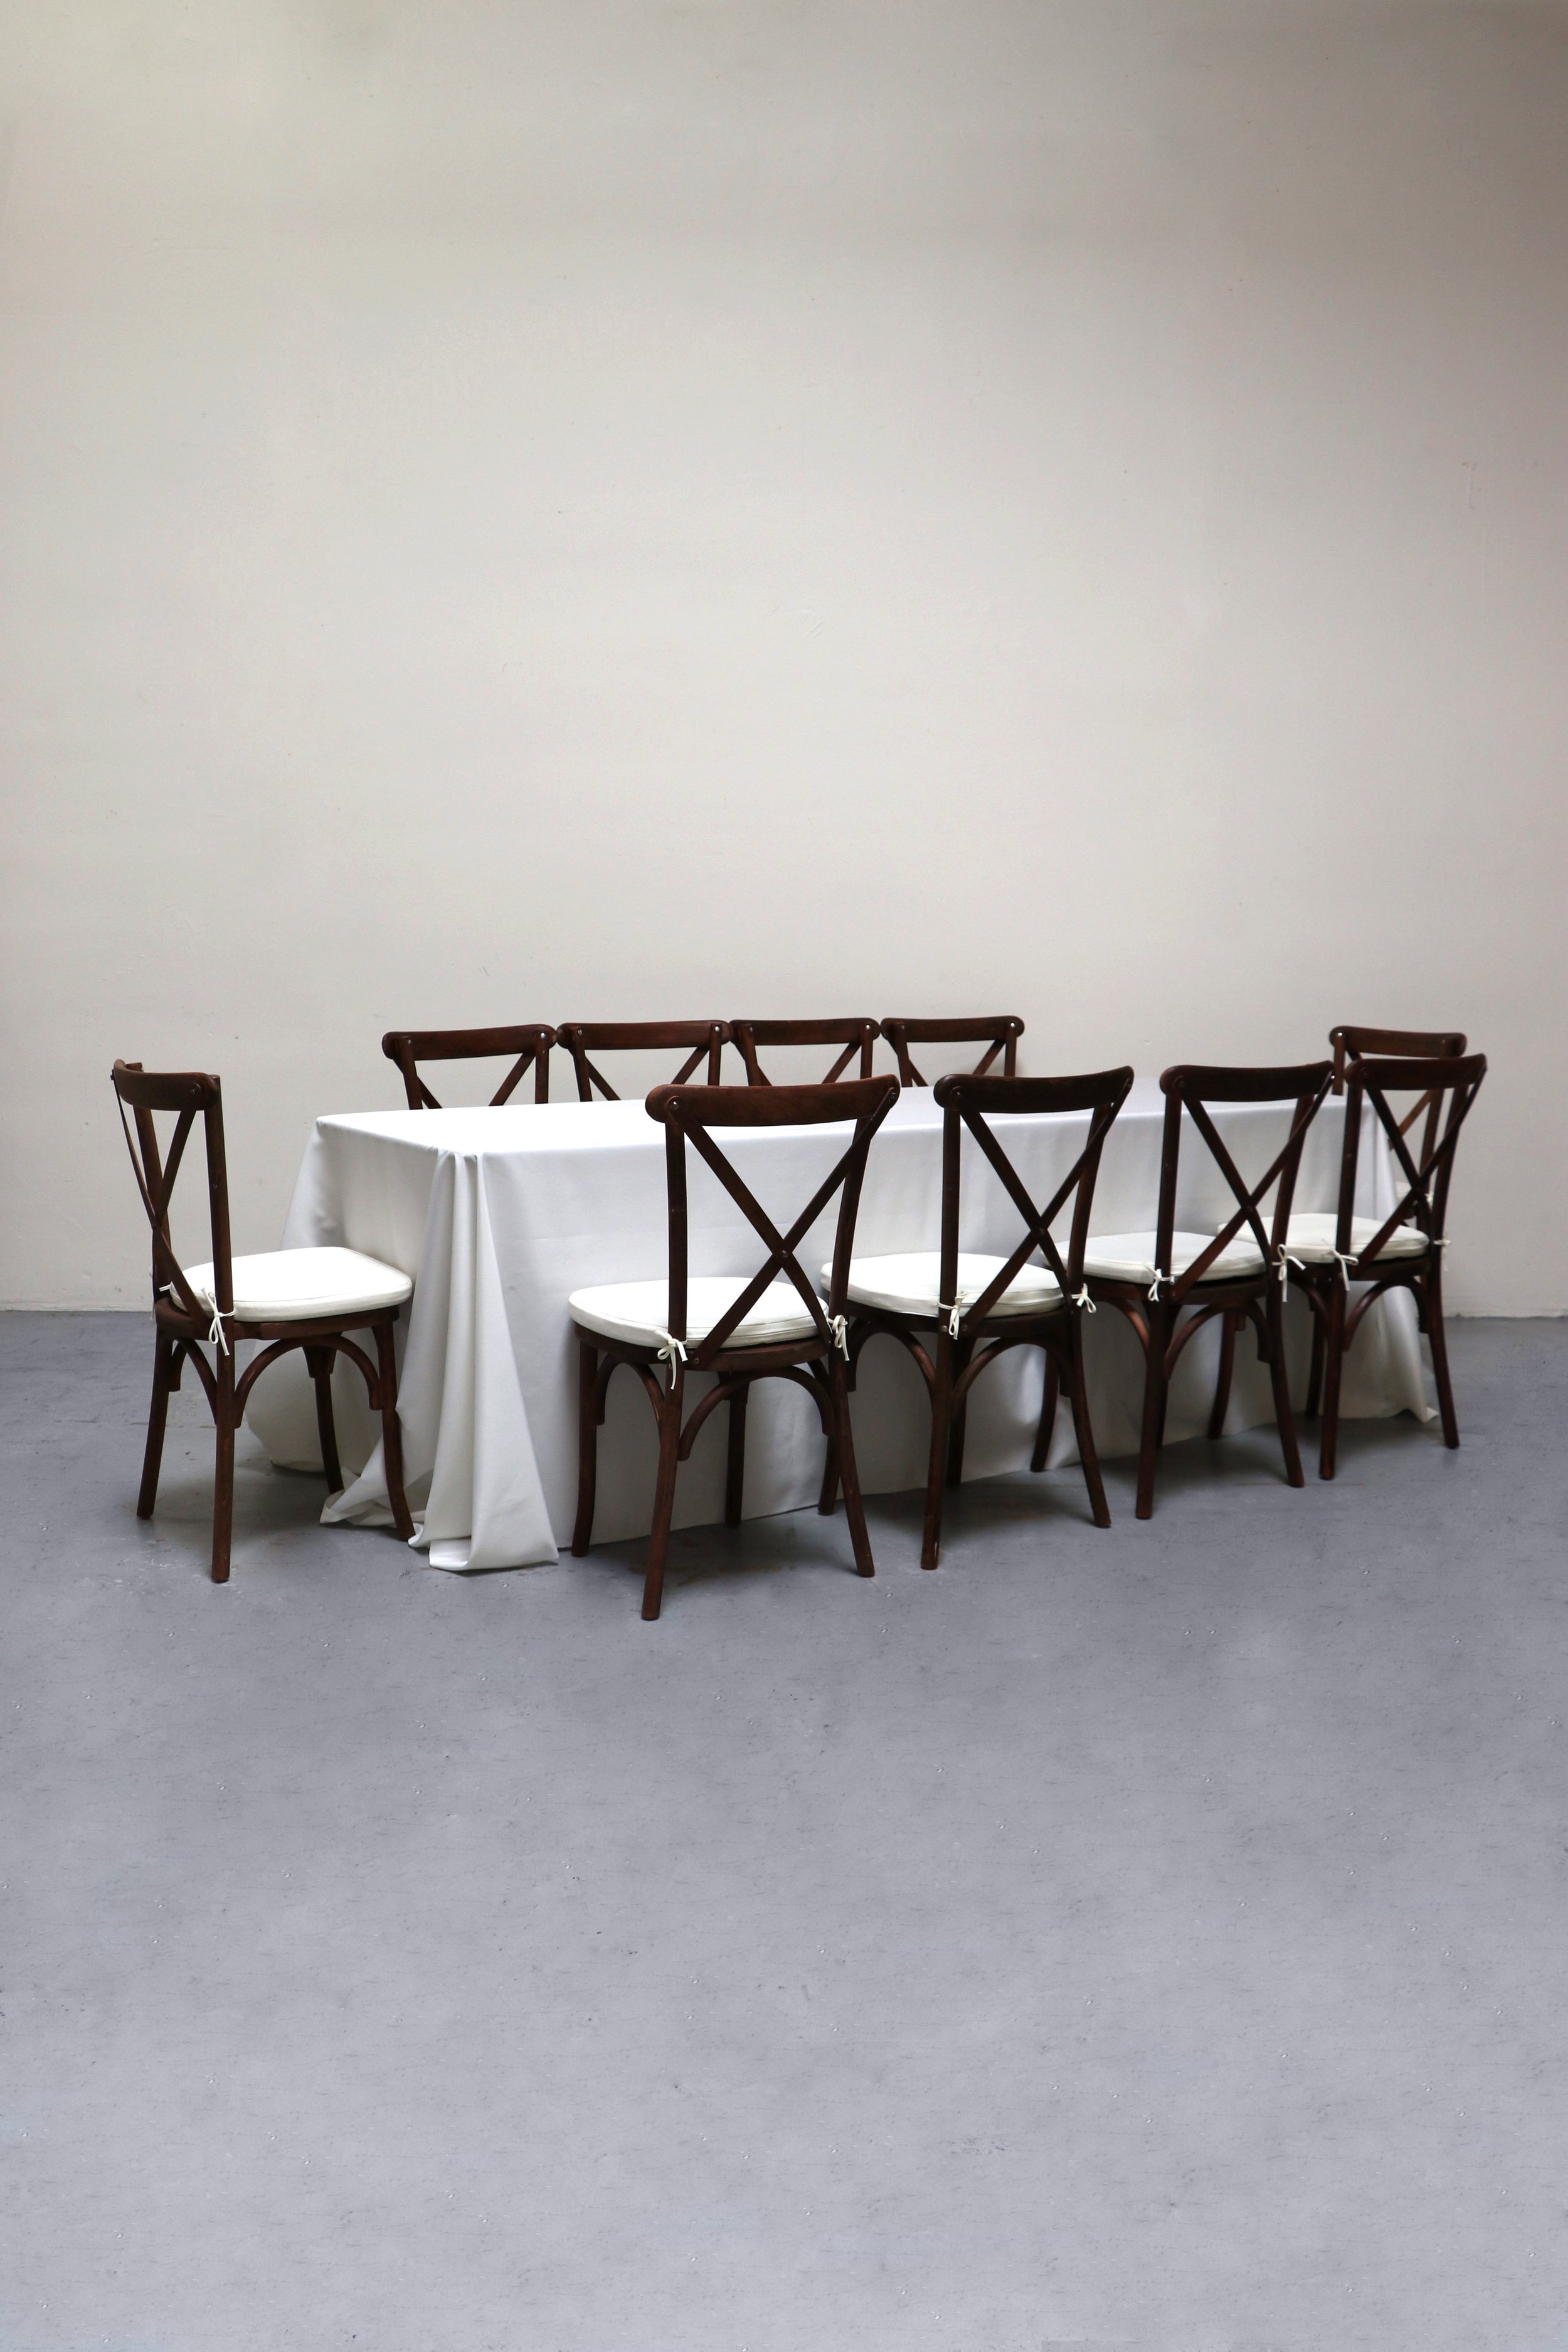 $100 1 Banquet Table with 10 Cross-Back Chairs